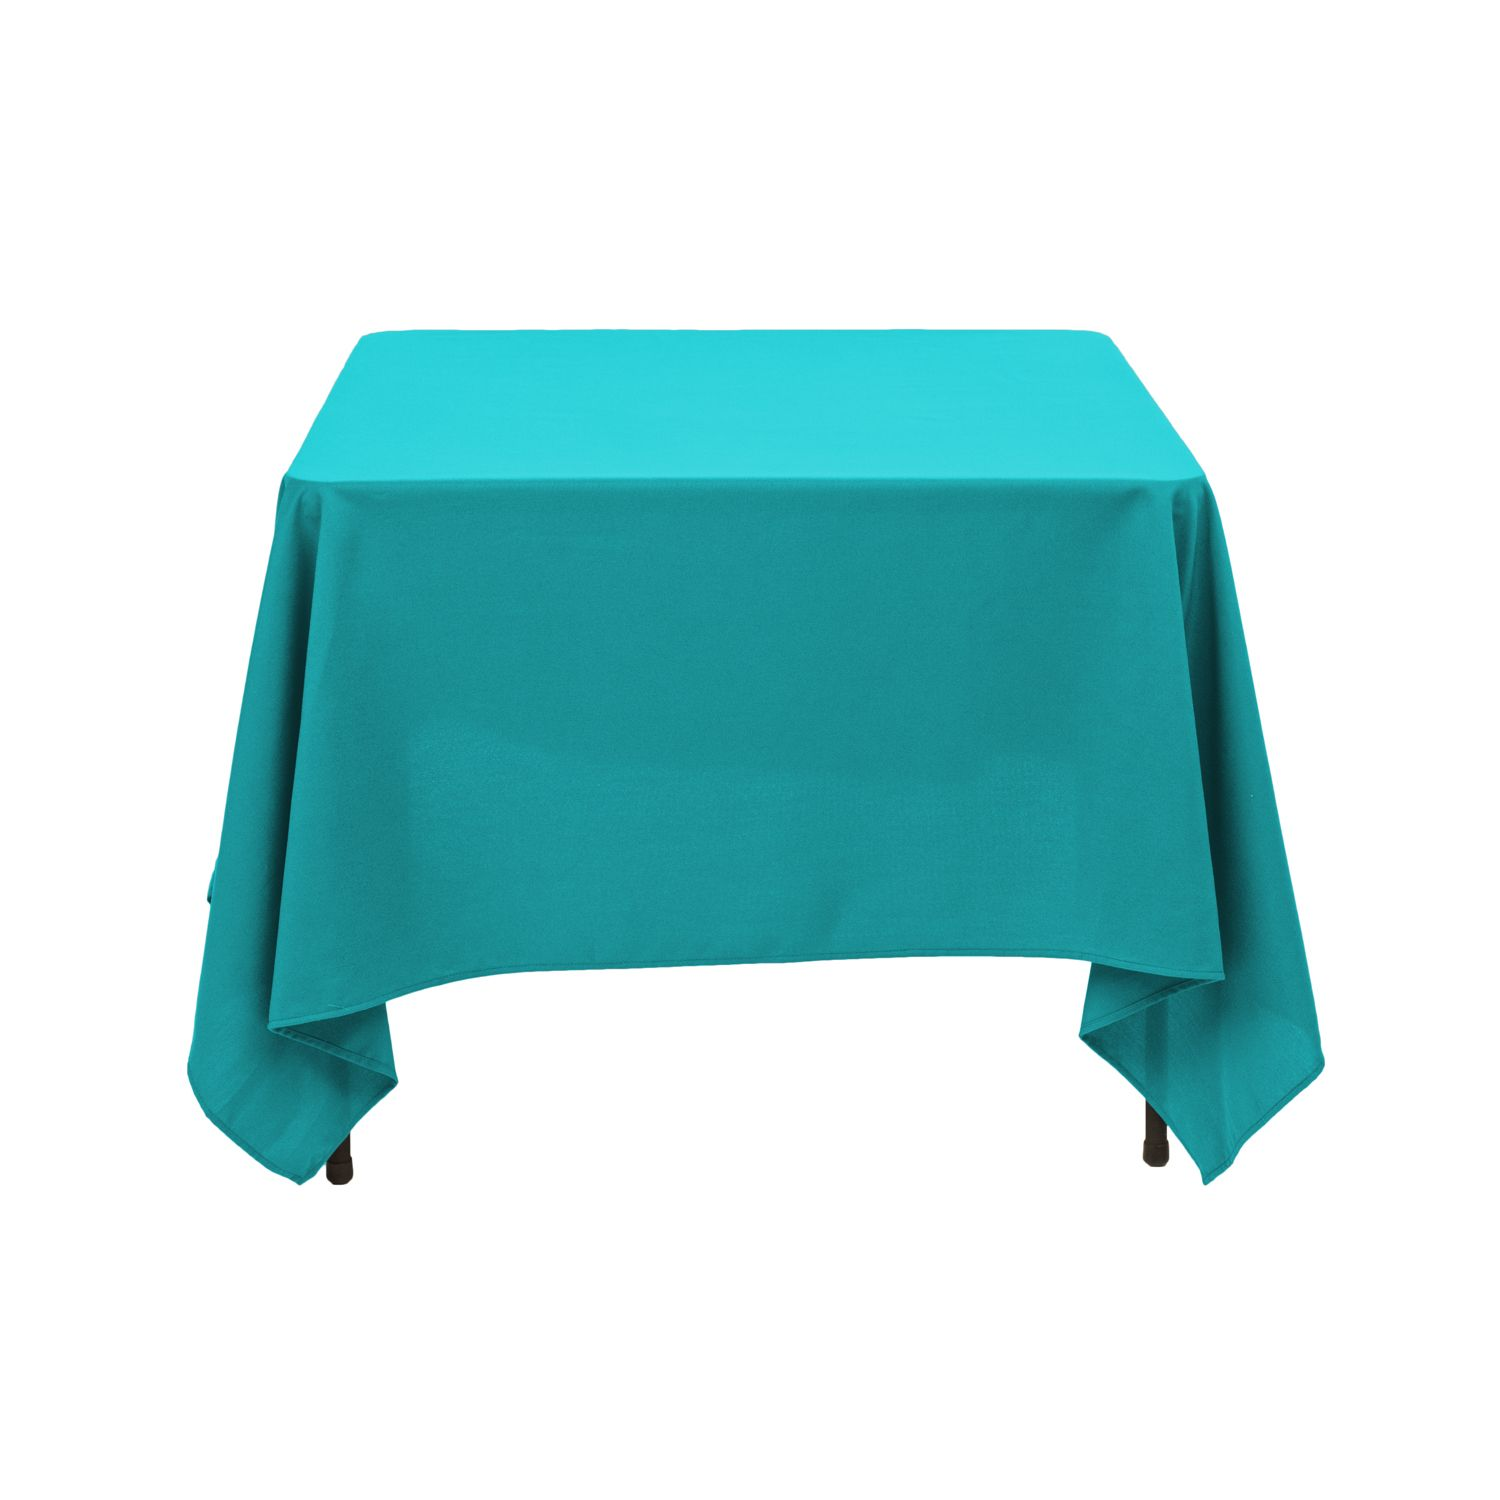 Delightful Our Square Tablecloths Are A Perfect Fit For Any Occasion. Visit Our  Website Or Give